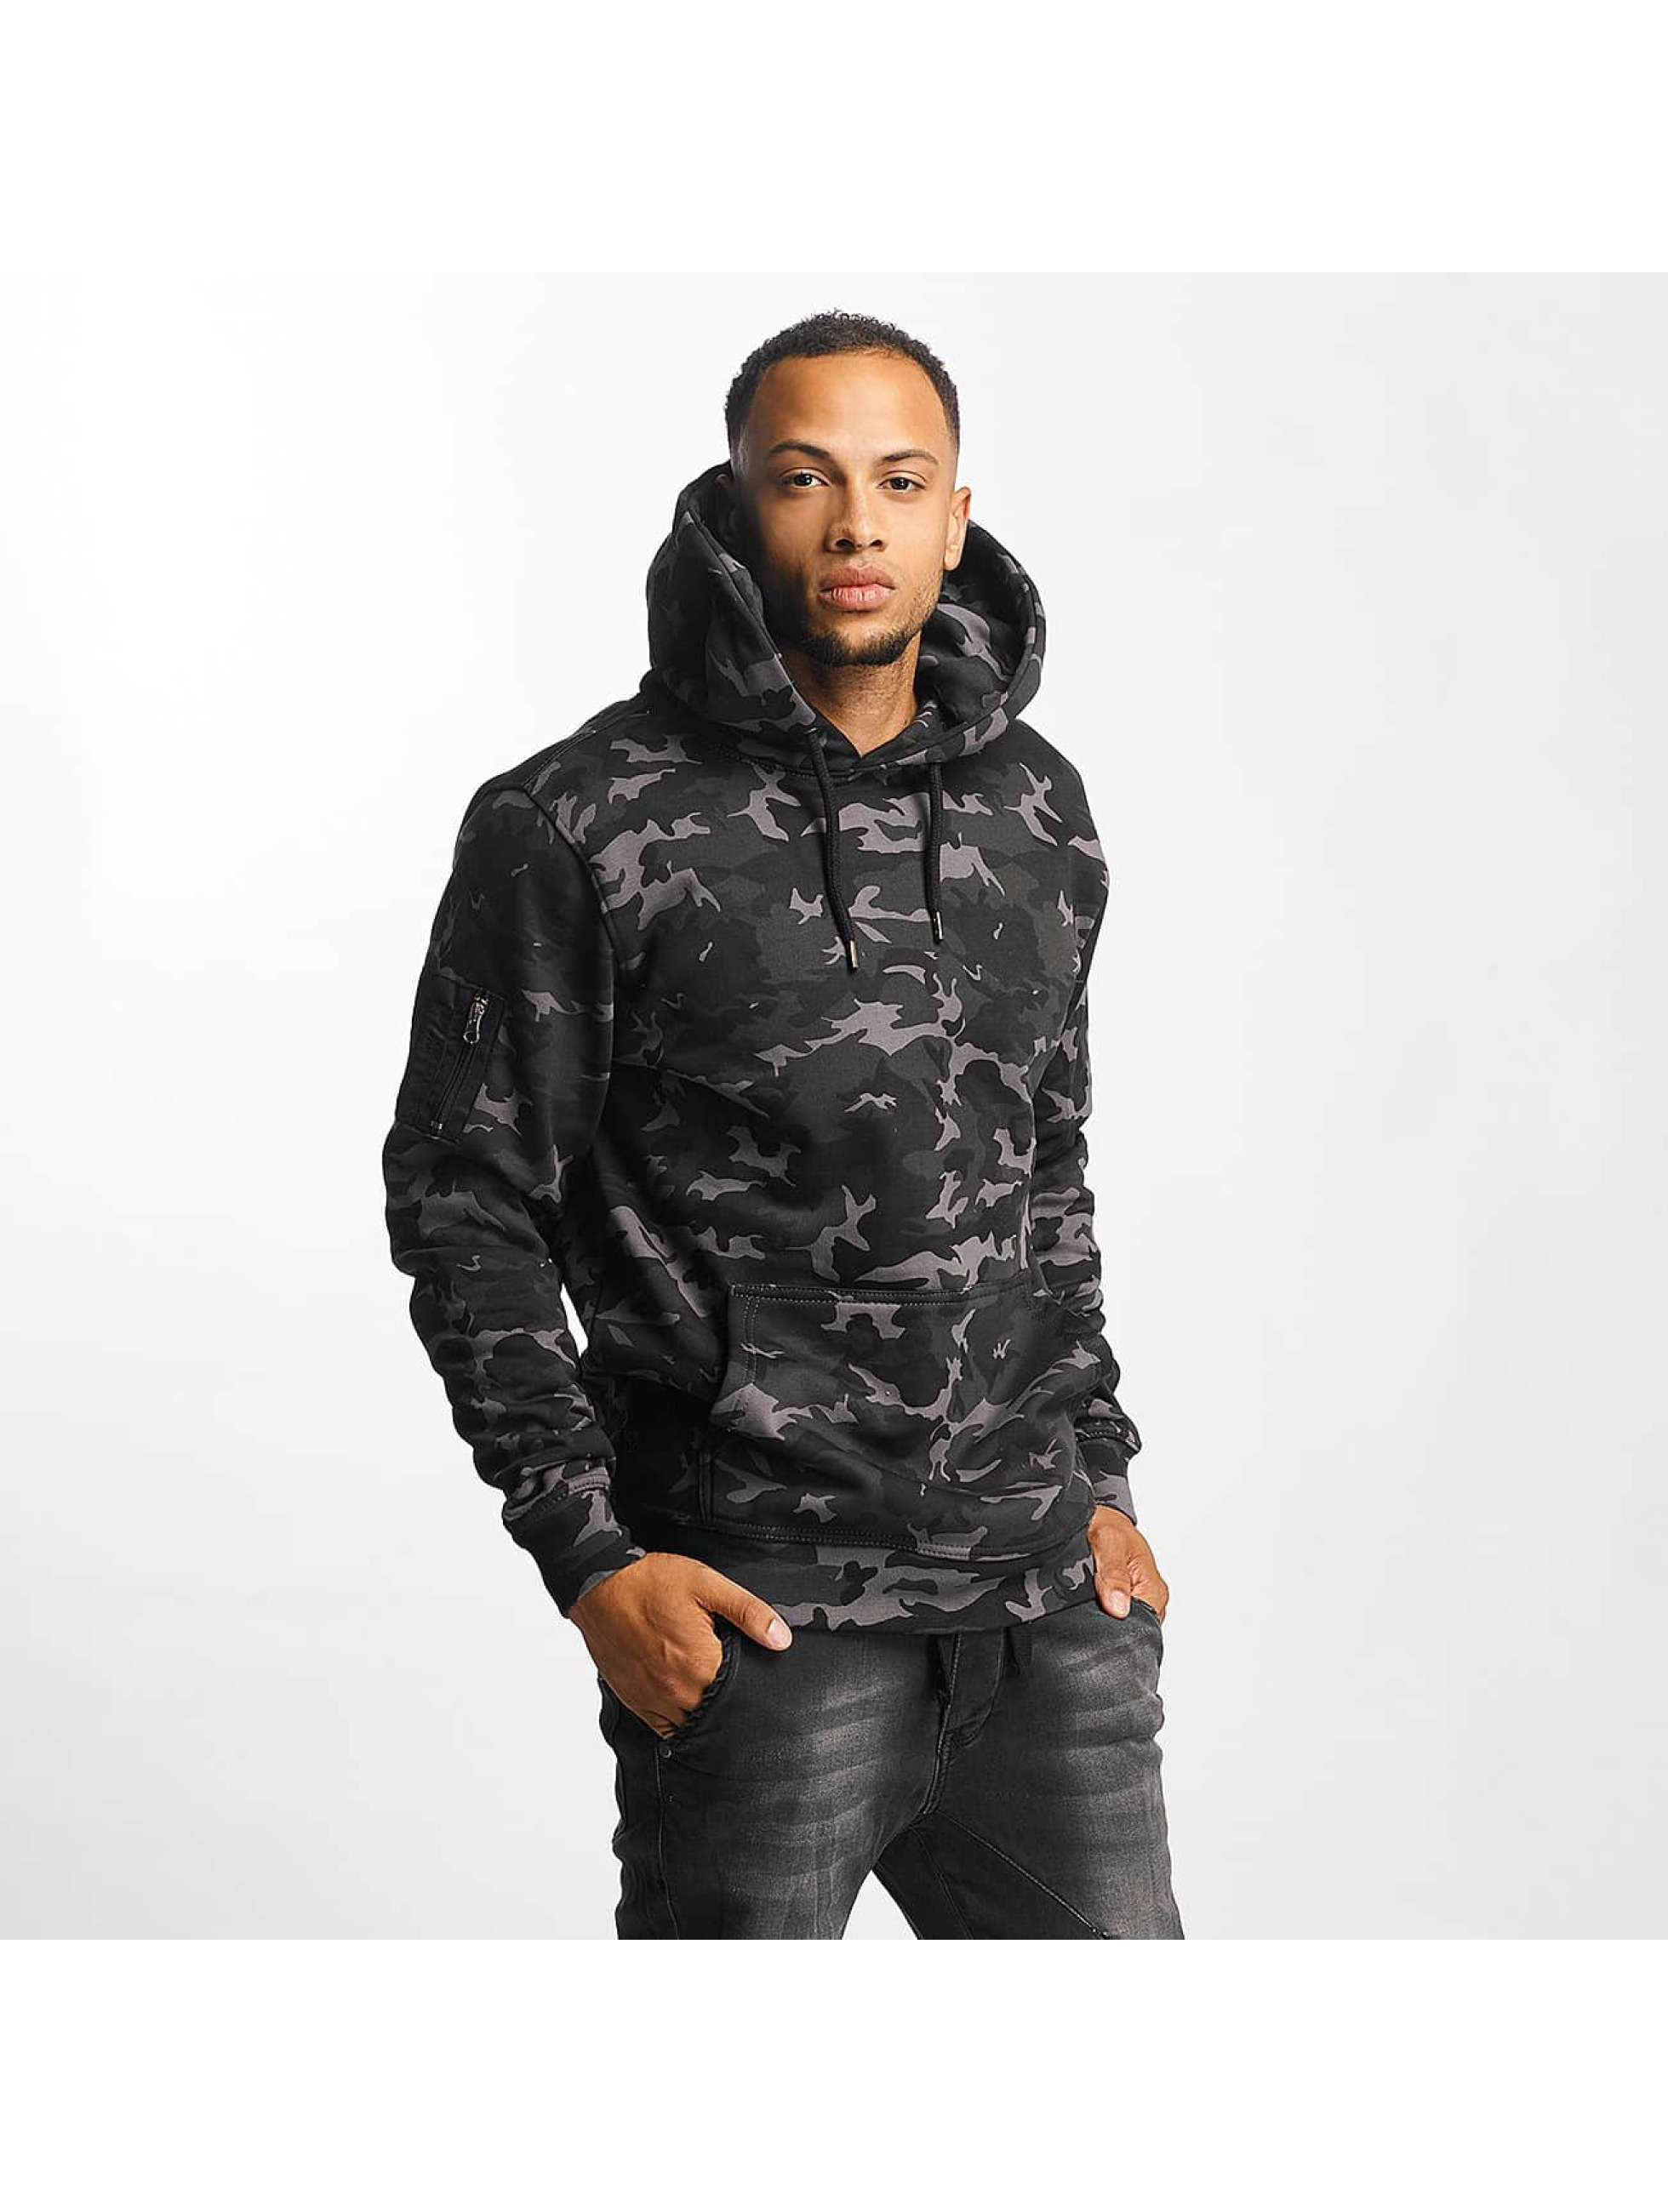 DEF Upper Arm Pocket camouflage Sweat capuche homme